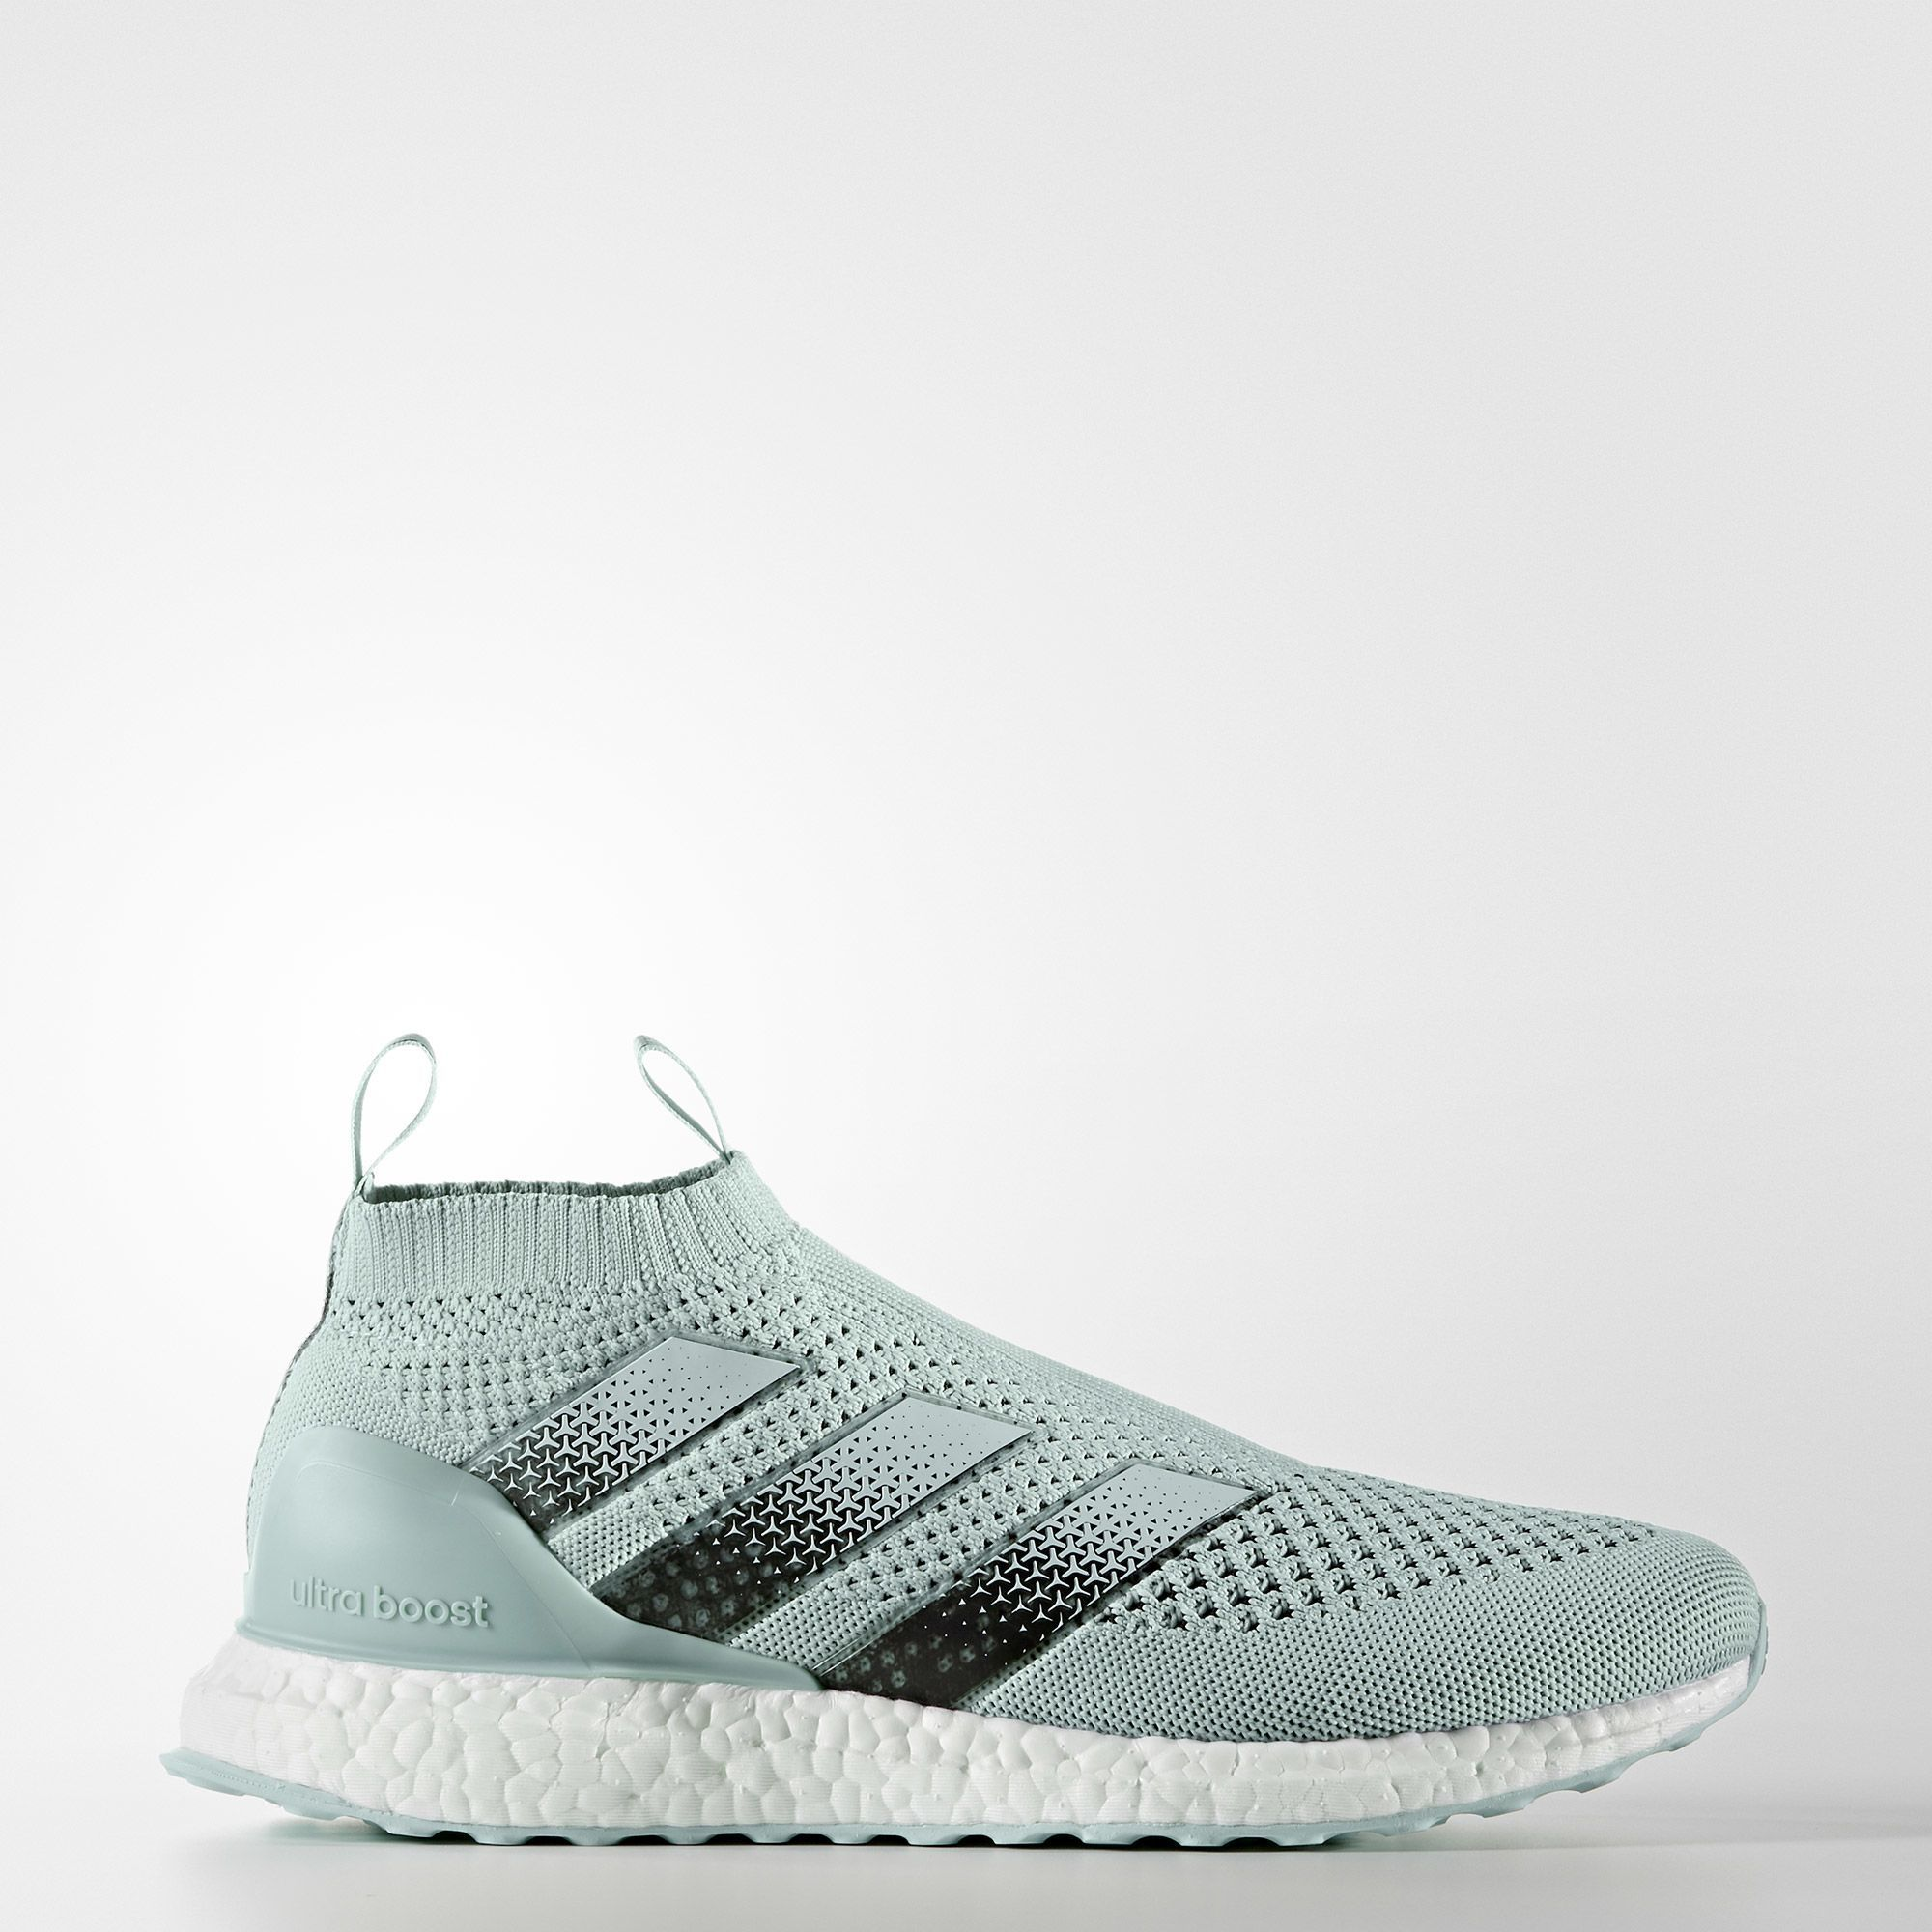 adidas - ACE 16+ Purecontrol Ultra Boost Shoes